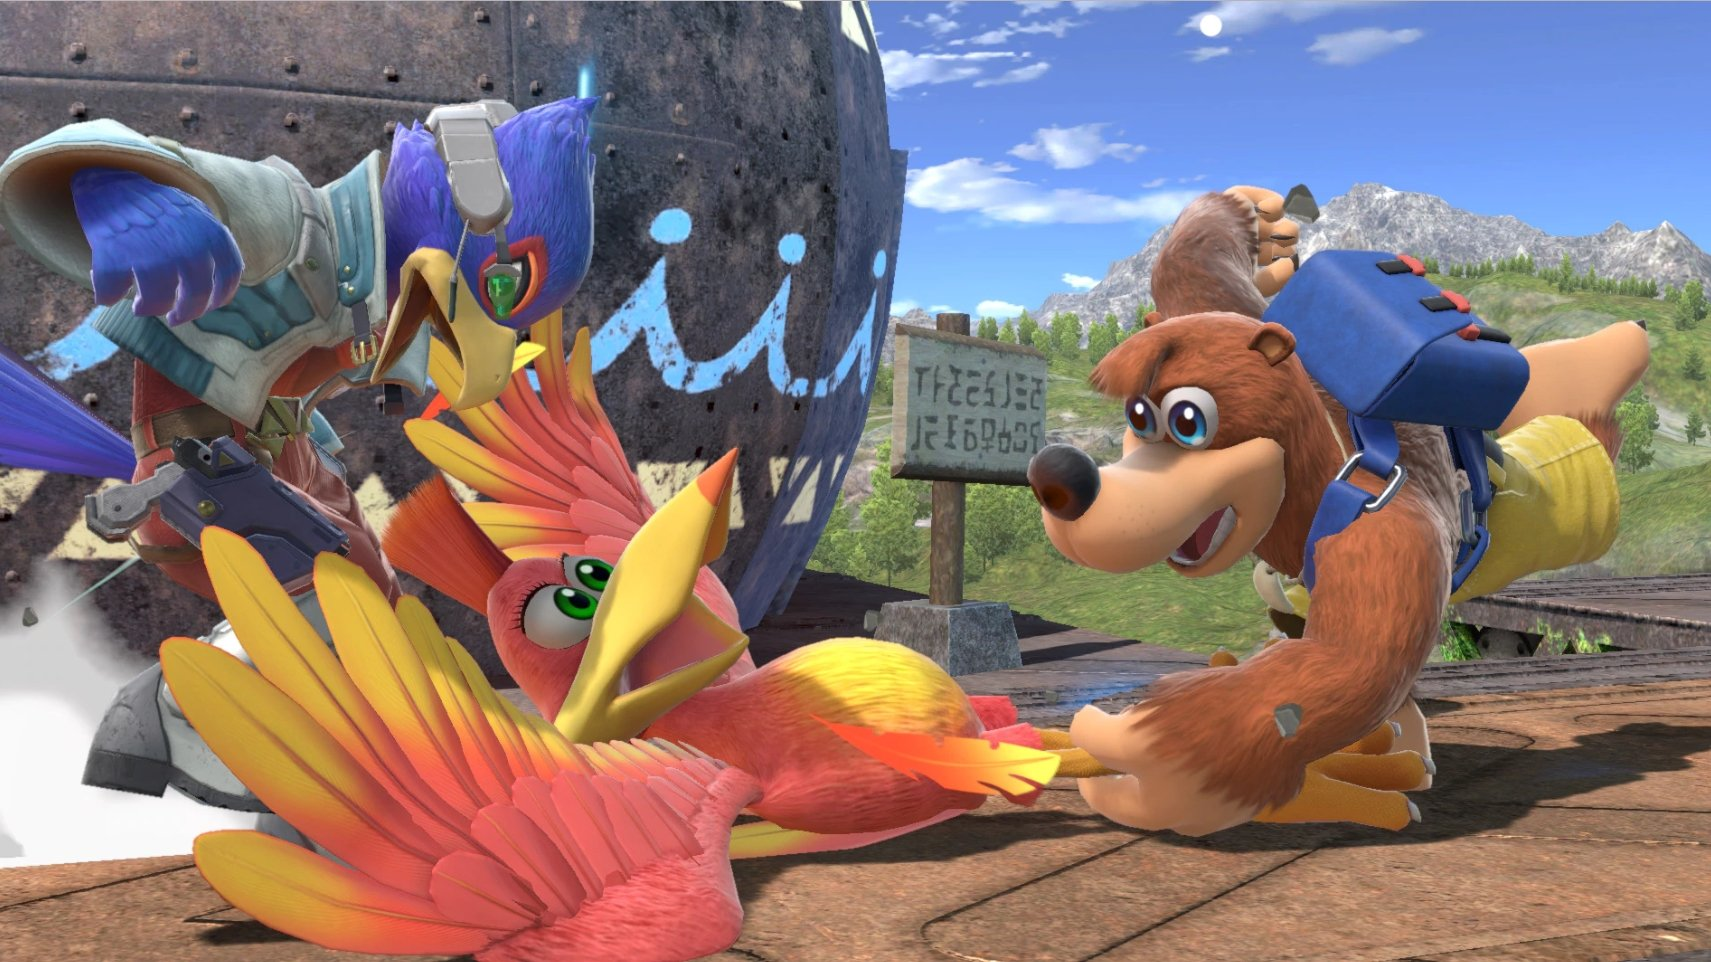 New Banjo-Kazooie Smash Ultimate images